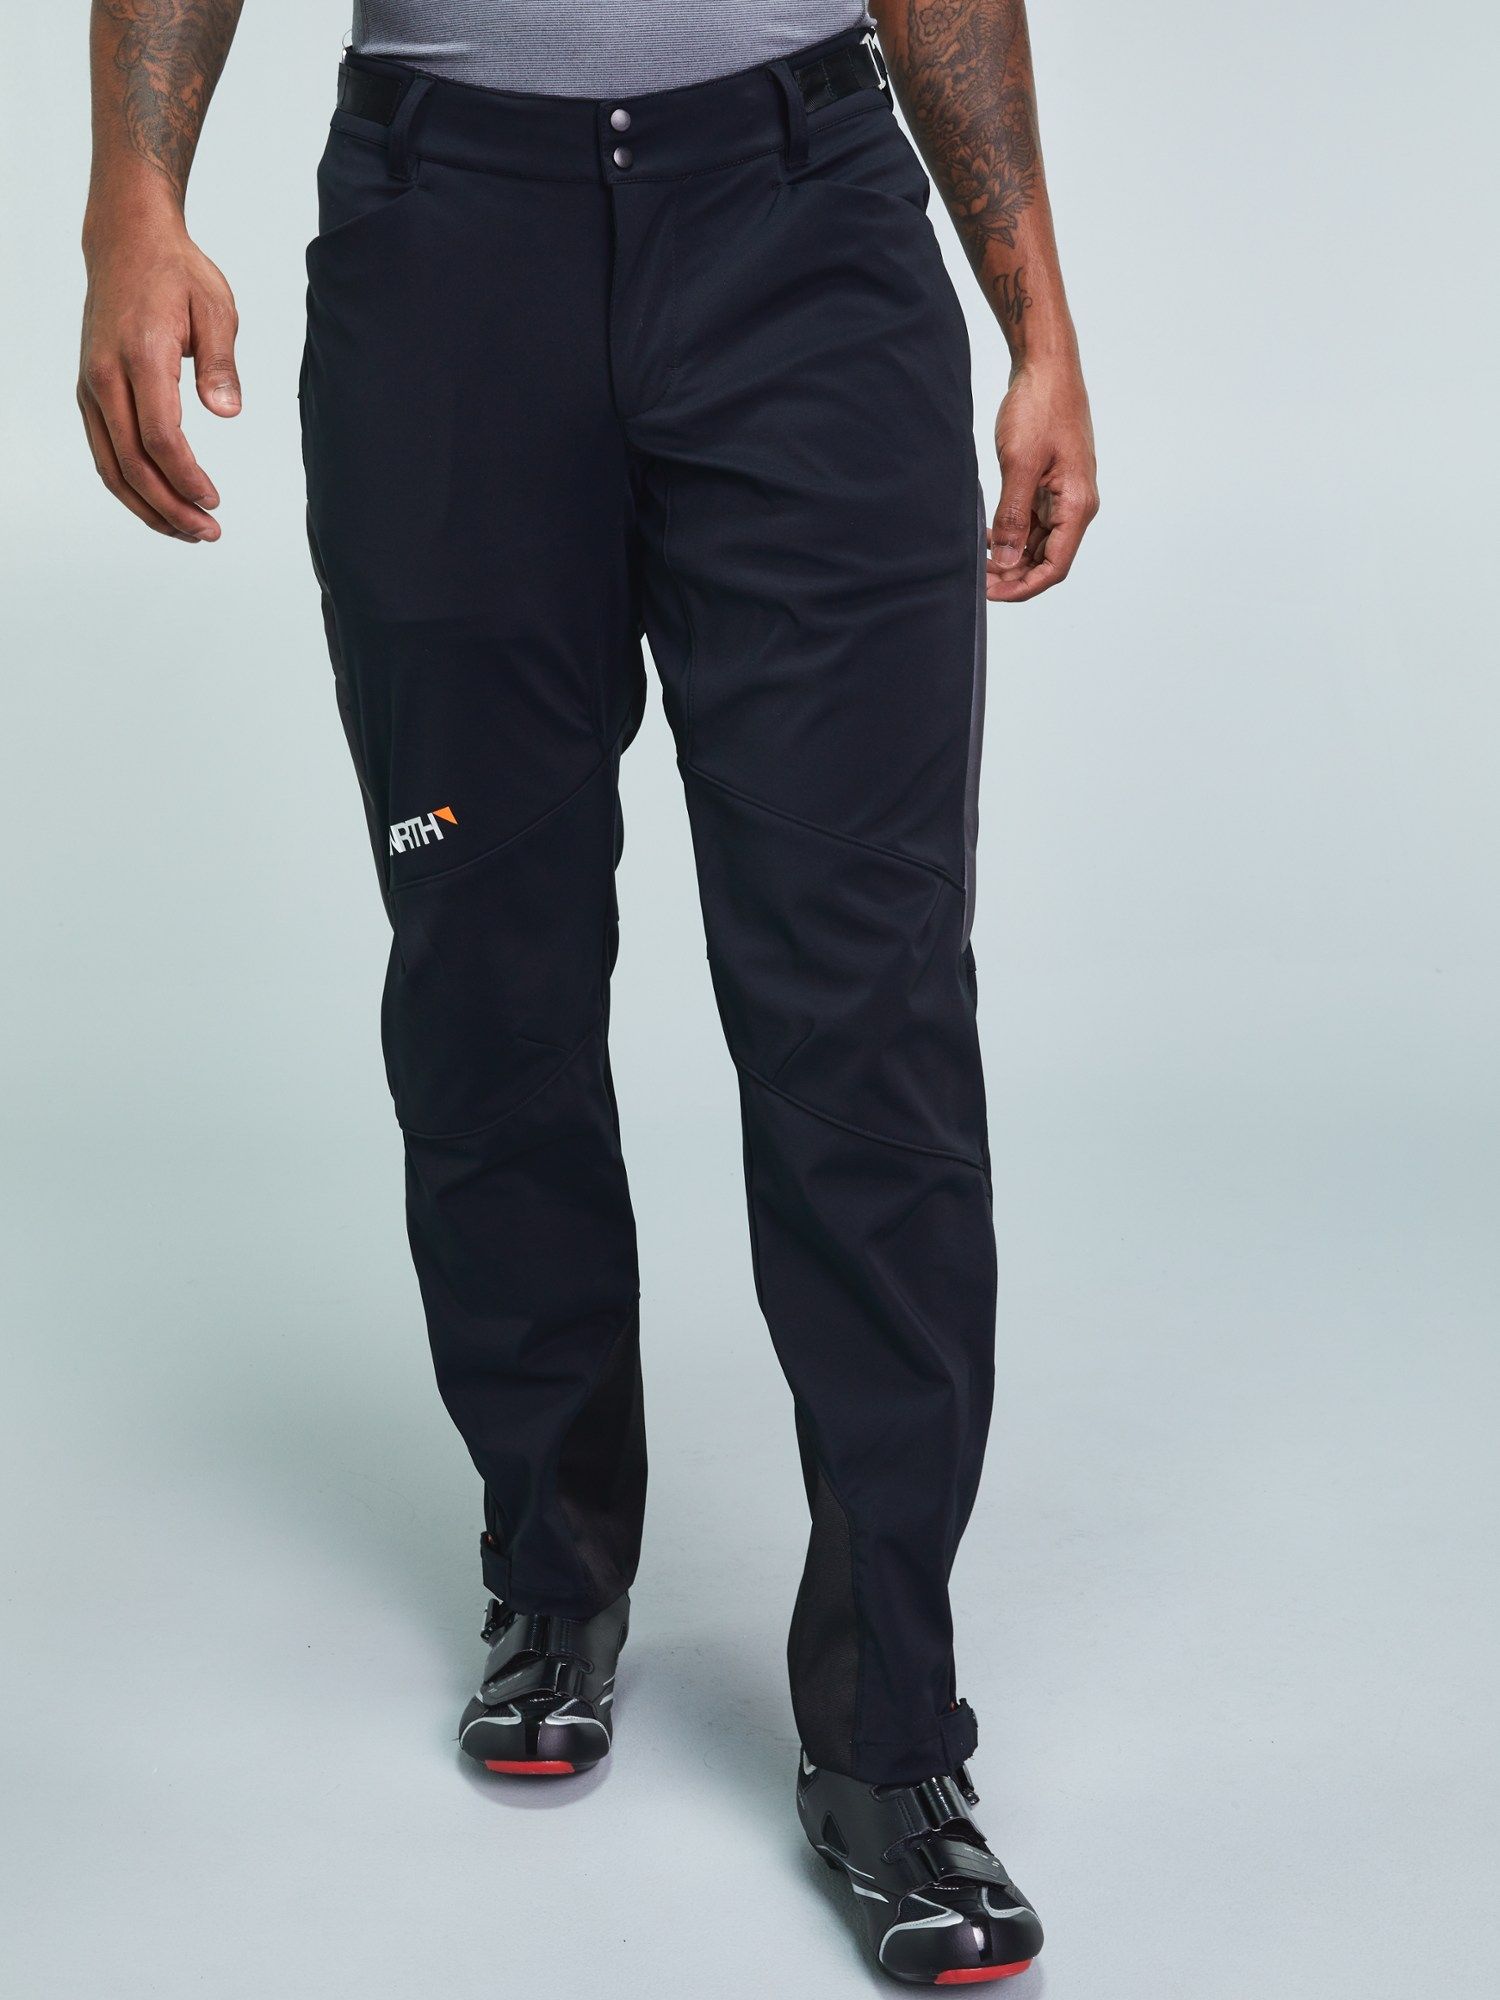 45NRTH Naughtvind Winter Cycling Pants - Men's